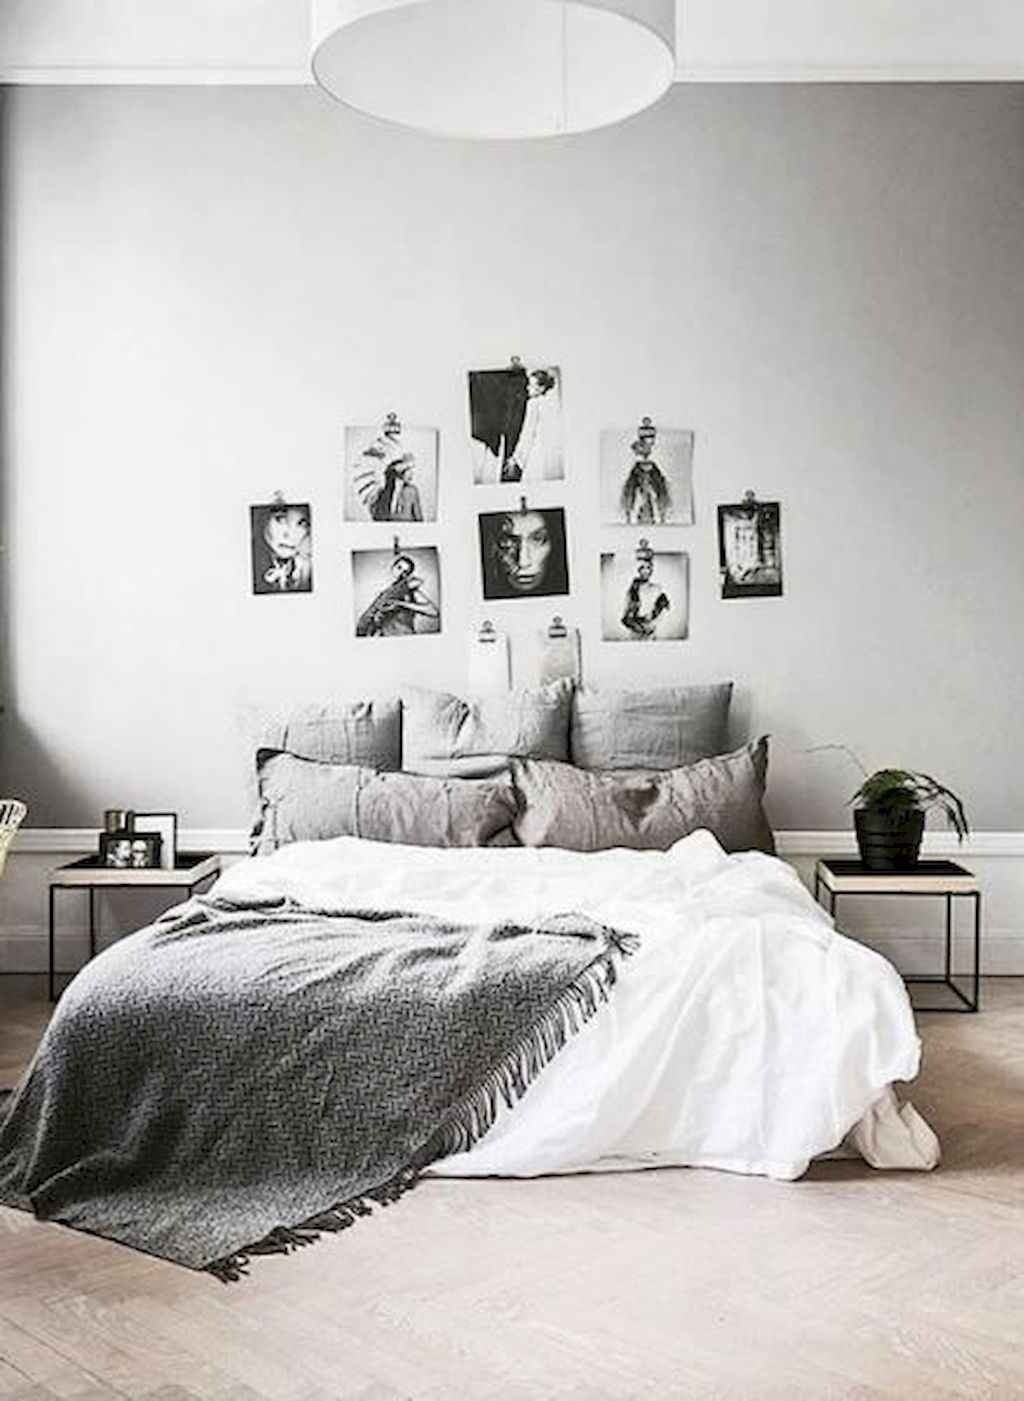 Couples first apartment decorating ideas (1)